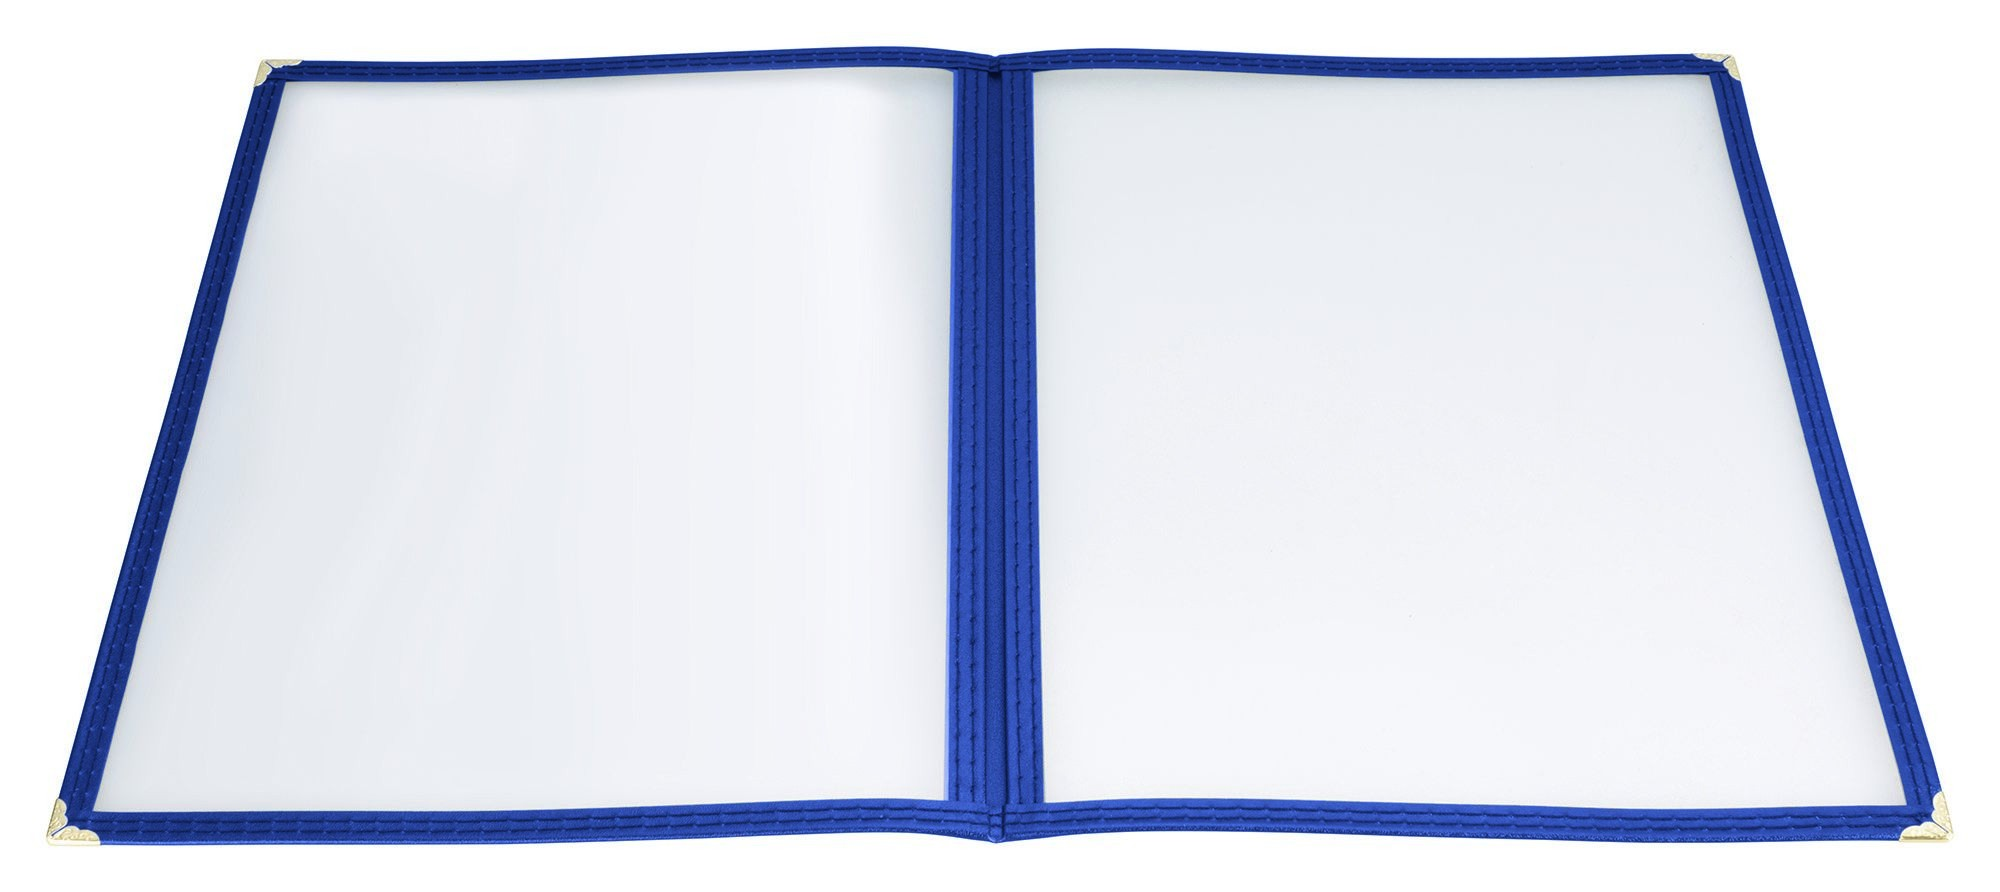 "Winco PMCD-9B Blue Double Fold Menu Cover 9-1/2"" x 12"""